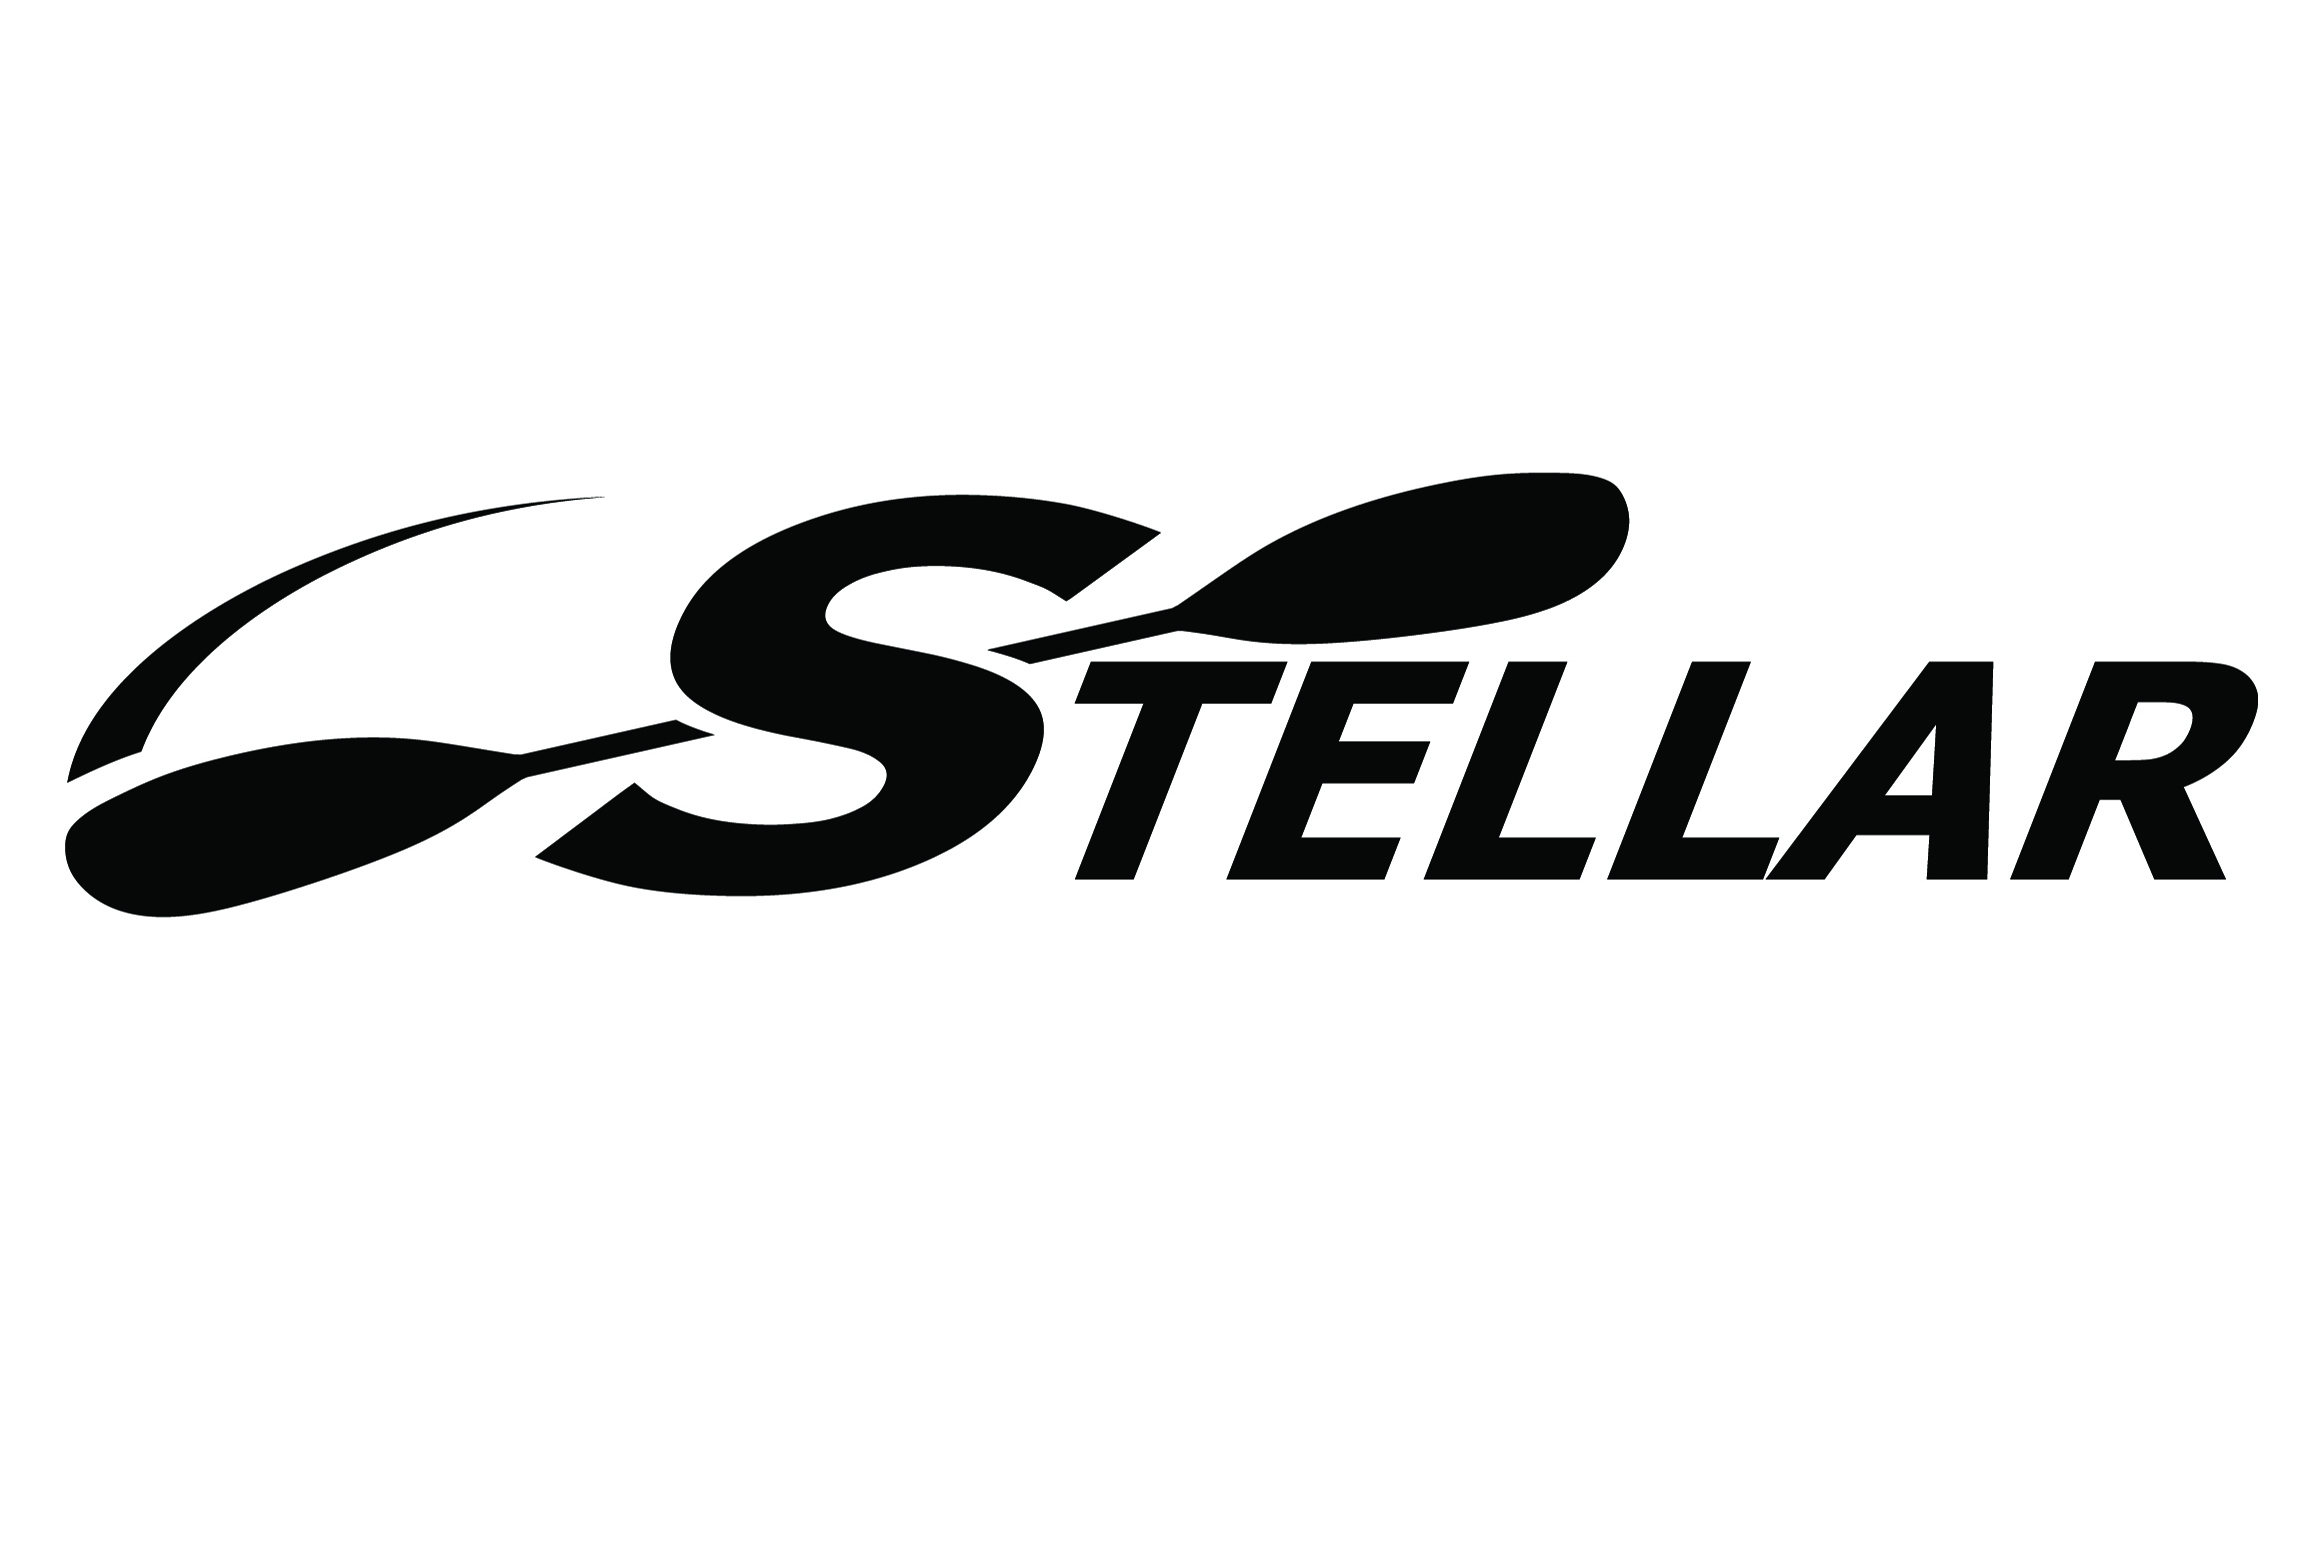 Stellar Decal Black